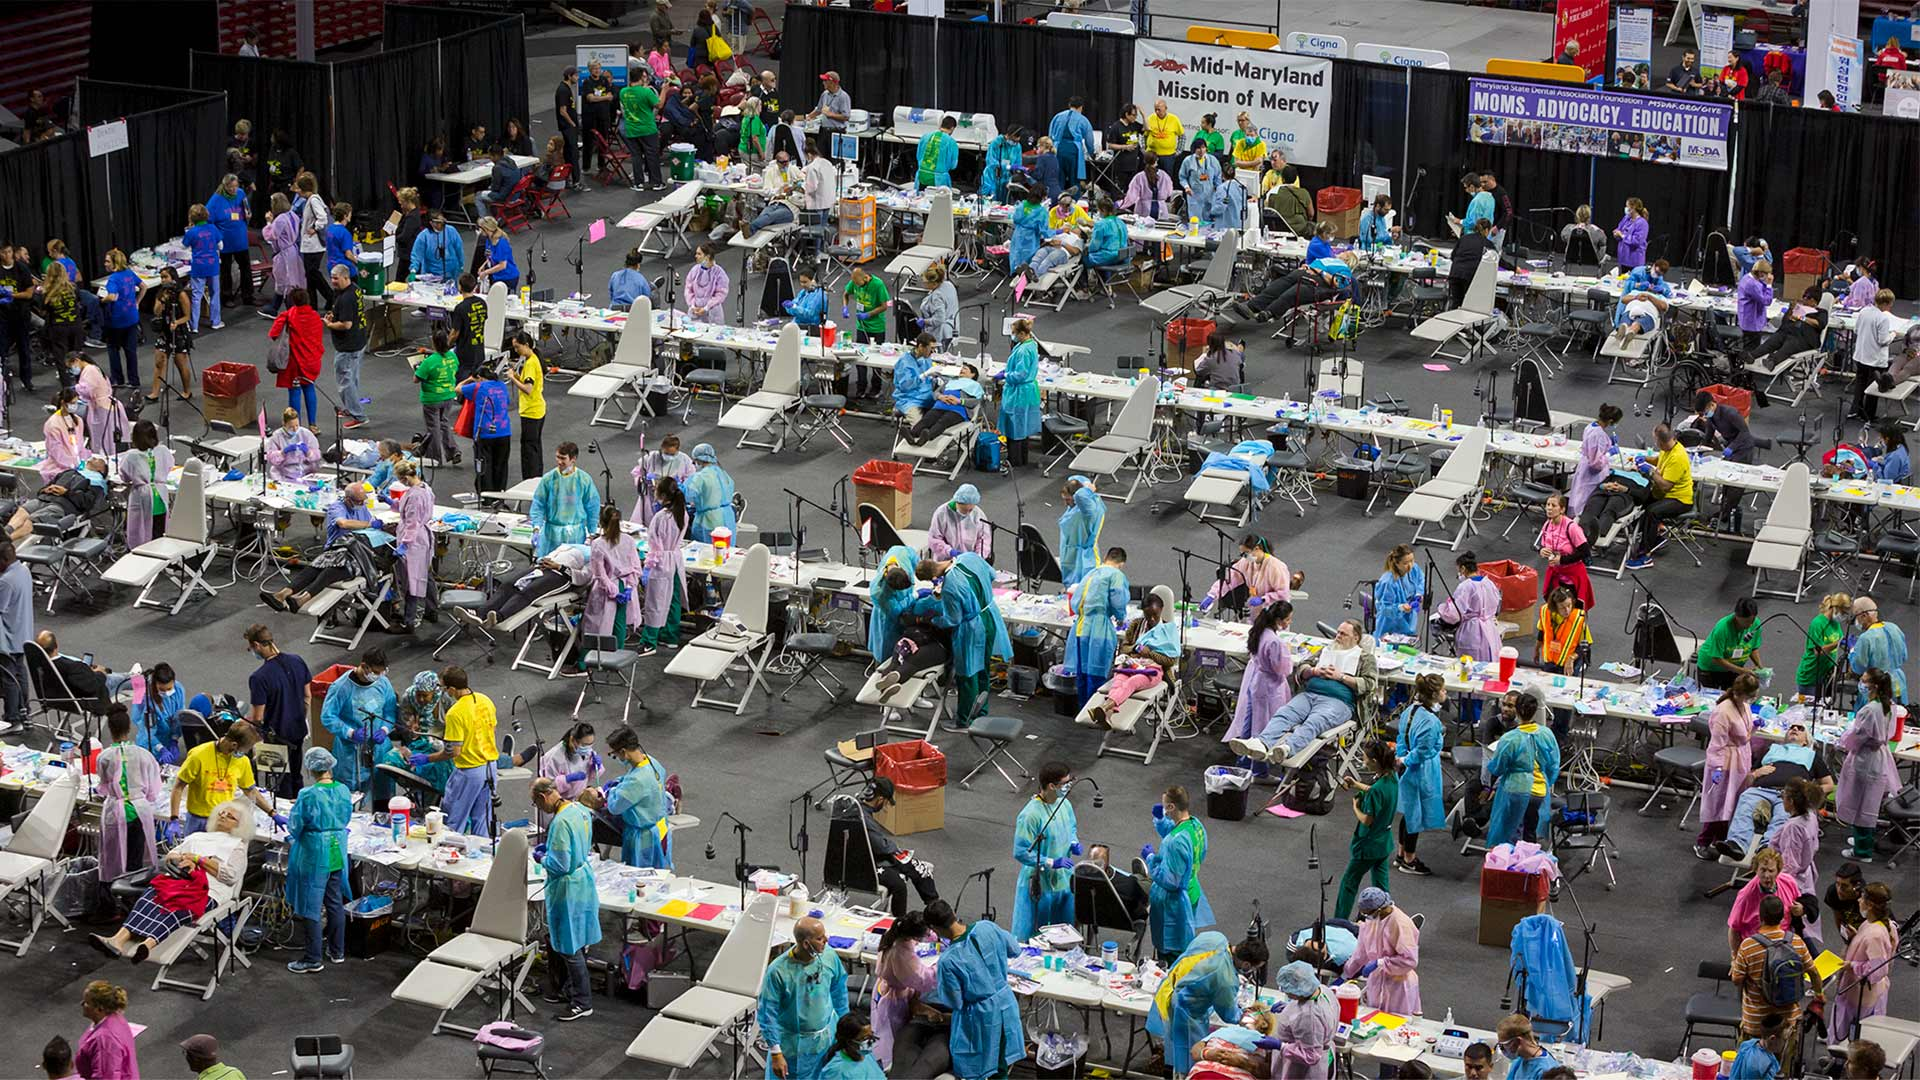 The Mid-Maryland Mission of Mercy & Health Equity Festival at the Xfinity Center featured free dental services ranging from cleanings and extractions to root canals and crown treatments, along with a variety of health screenings and other resources. (Photos by Stephanie S. Cordle)